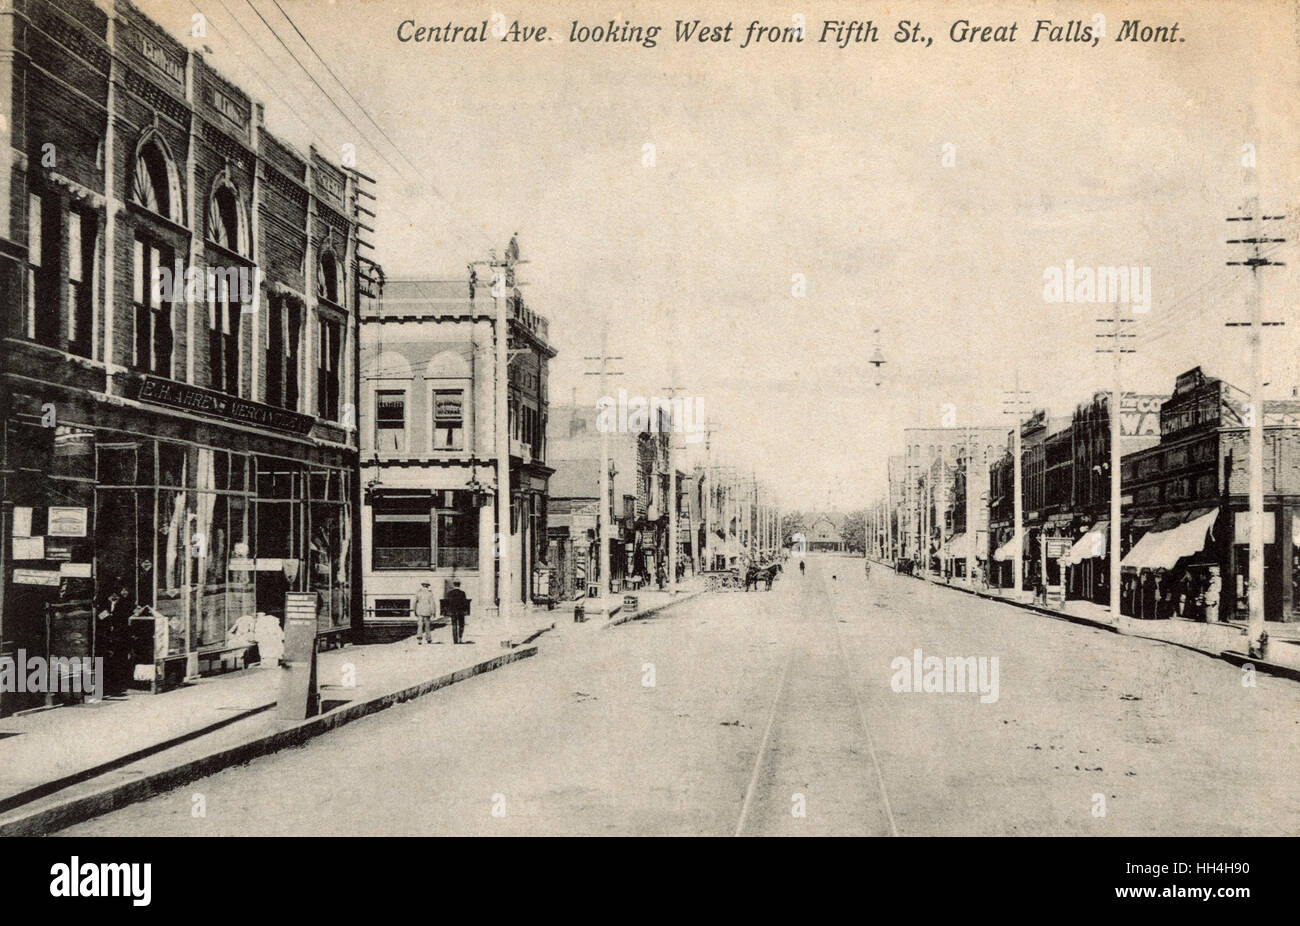 Central Avenue from 5th Street, Great Falls, Montana, USA - Stock Image